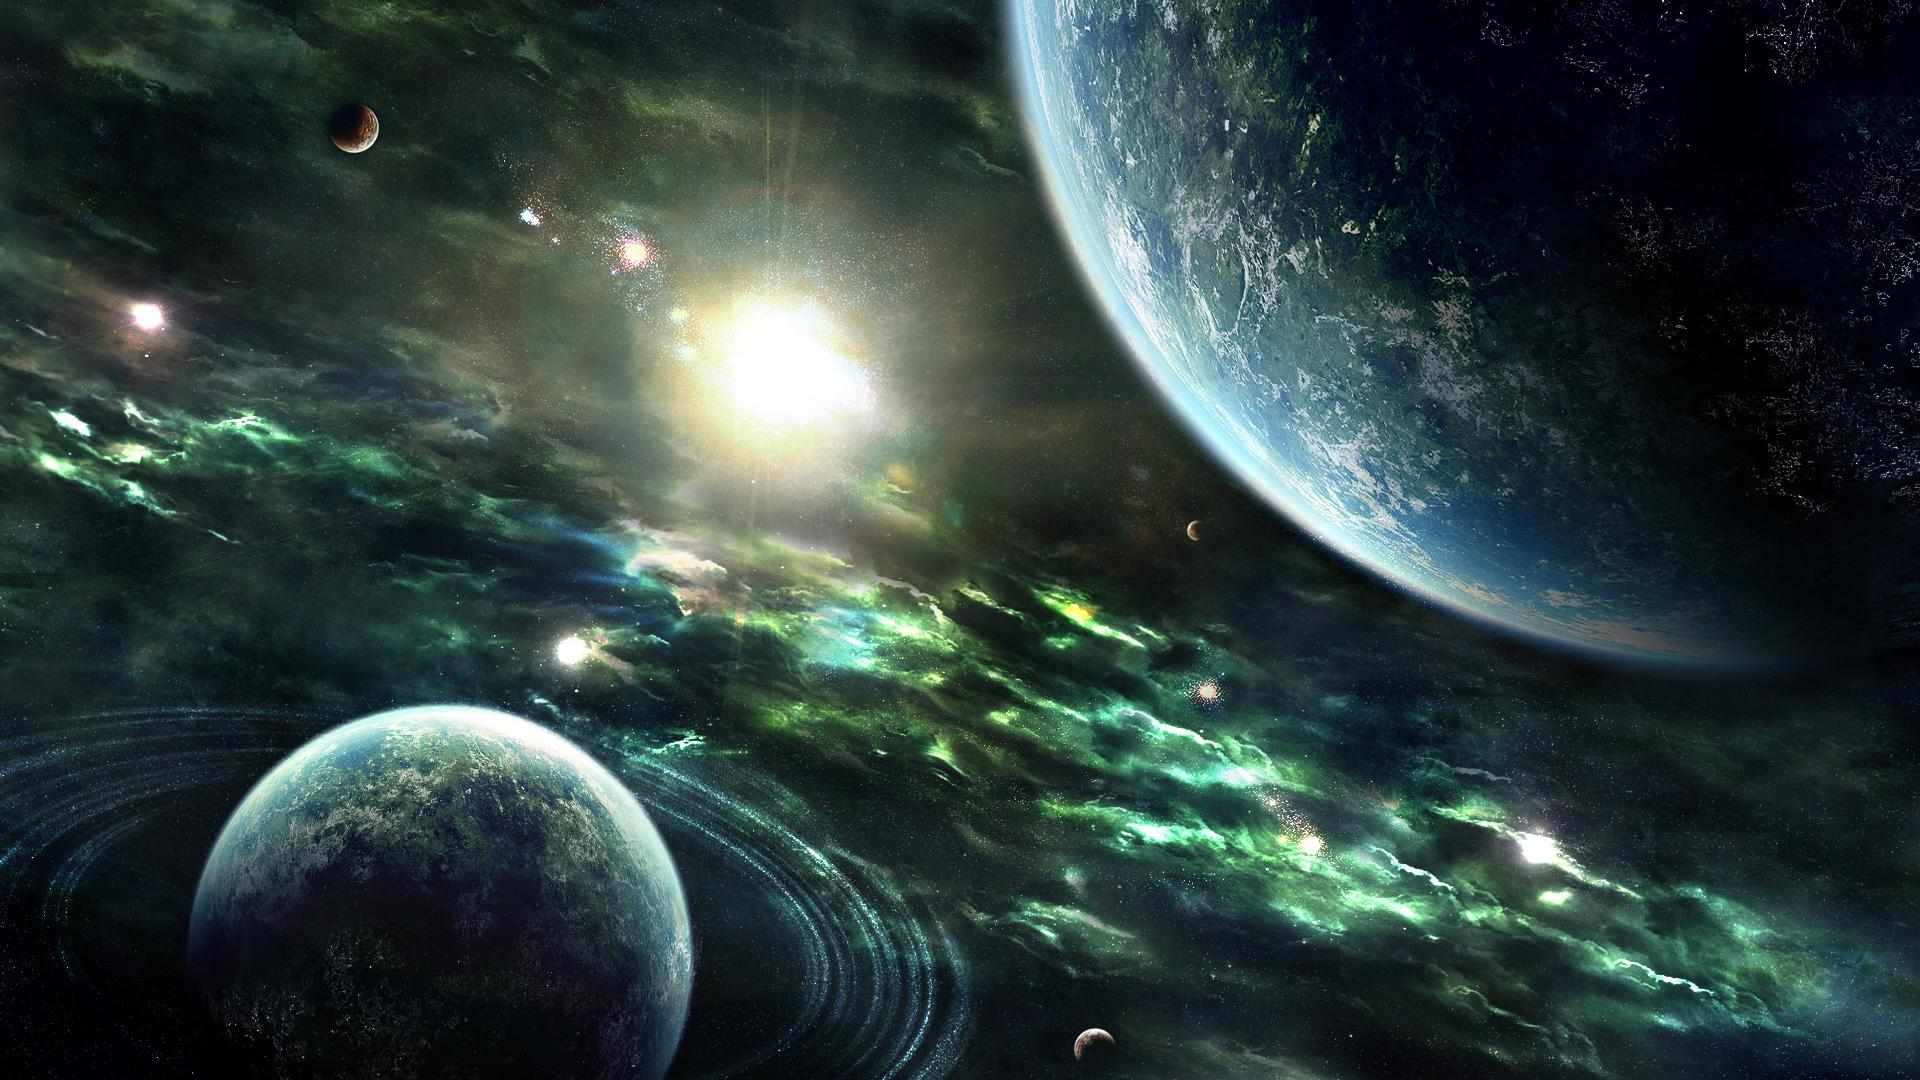 space wallpaper - Space Wallpaper (32897730) - Fanpop